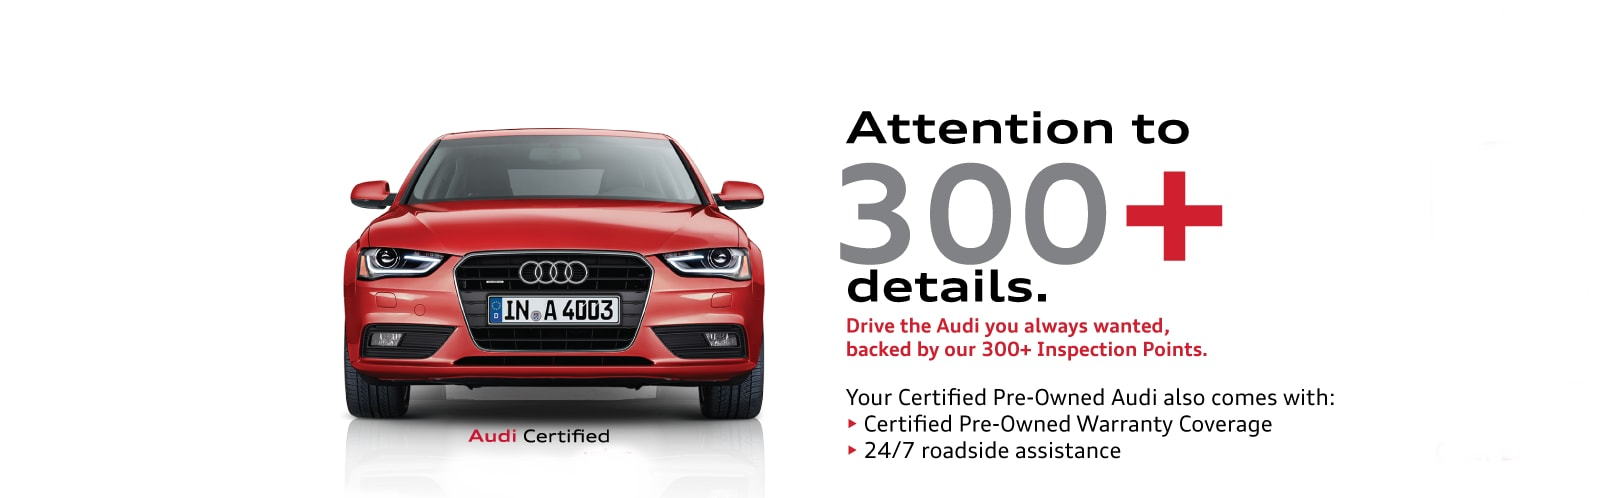 Audi Marietta New Used Audi Cars Dealer Near Atlanta - Audi certified pre owned warranty review